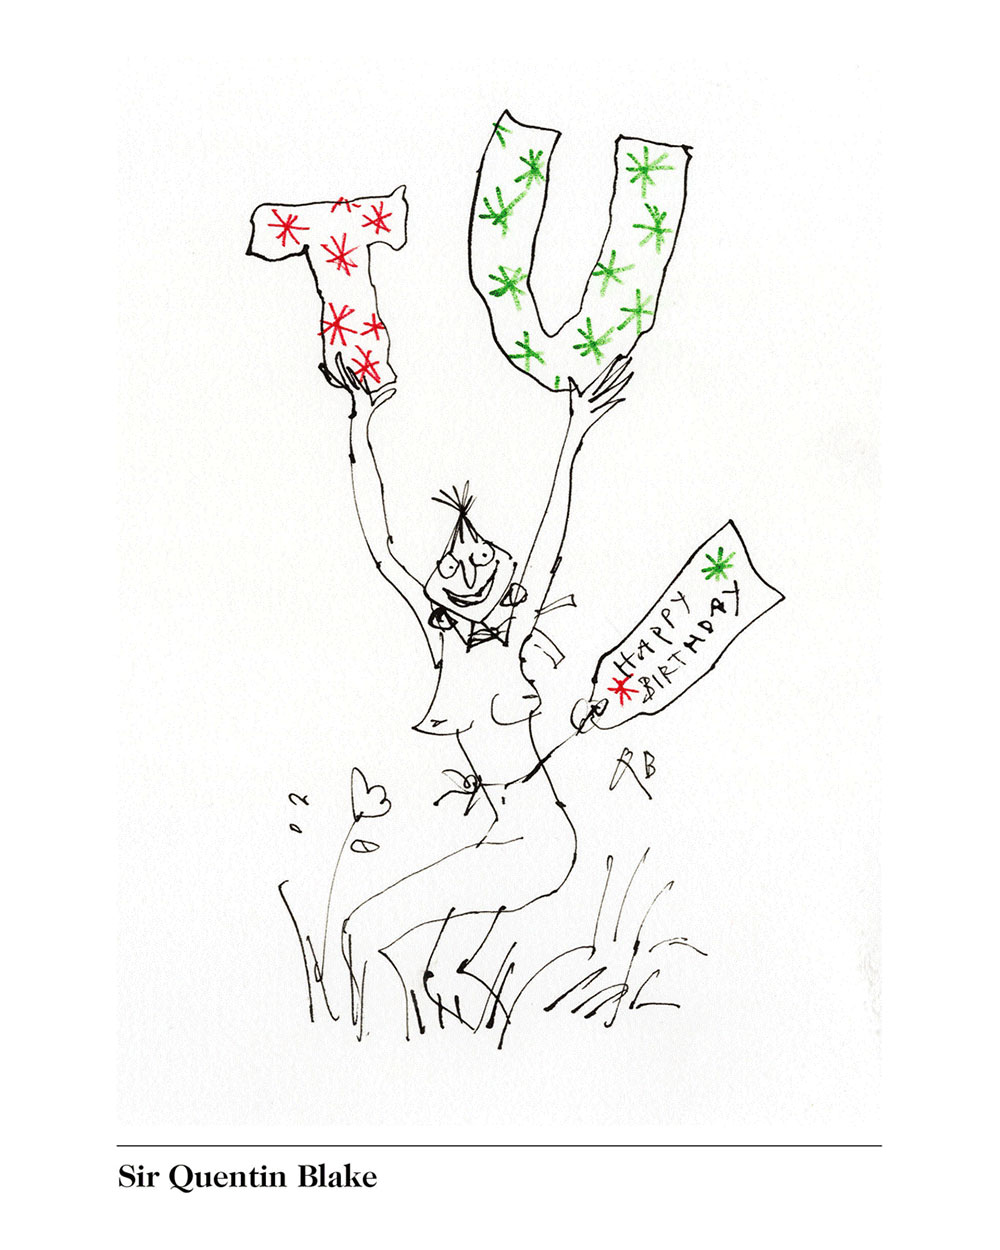 Birthday greeting from Sir Quentin Blake, from http://www.phaidon.com/CelebrateTomi